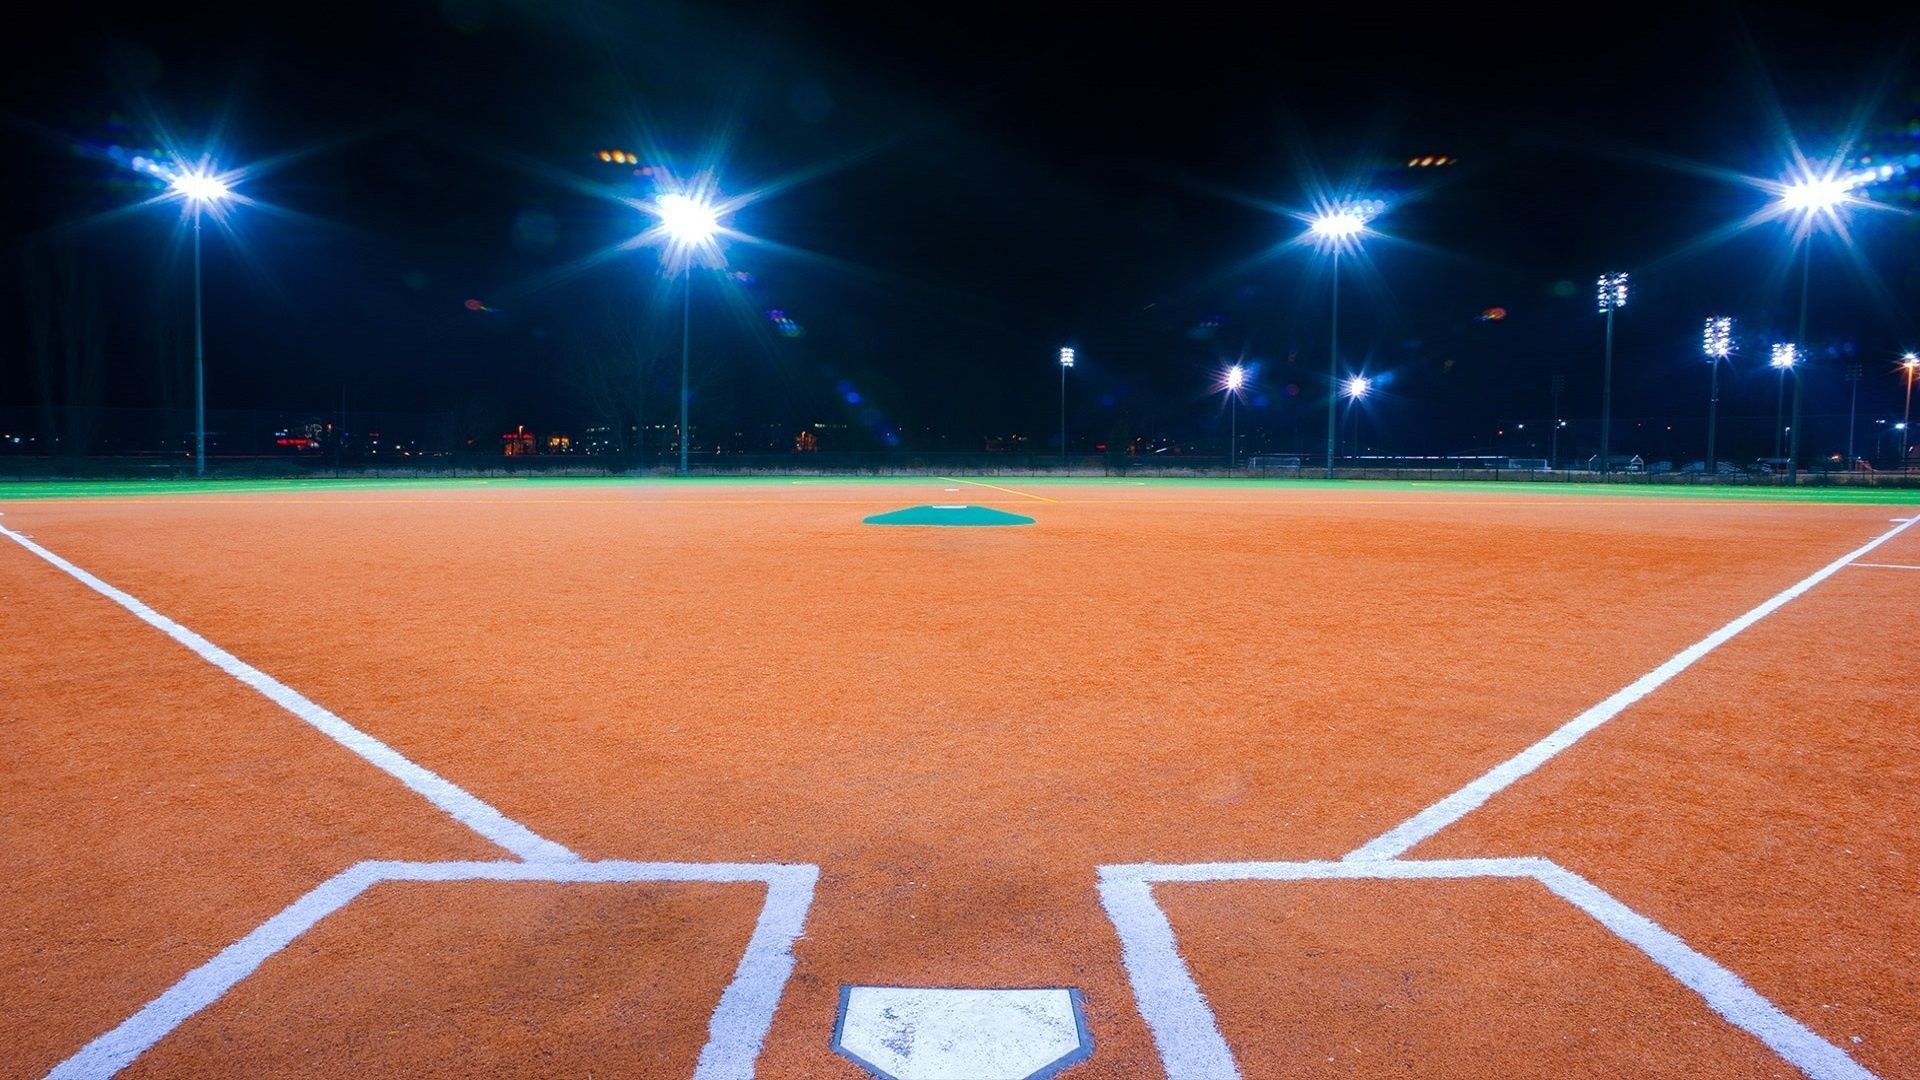 Res: 1920x1080, Baseball Images, Baseball Wallpapers - Johnsie Meints – download for free